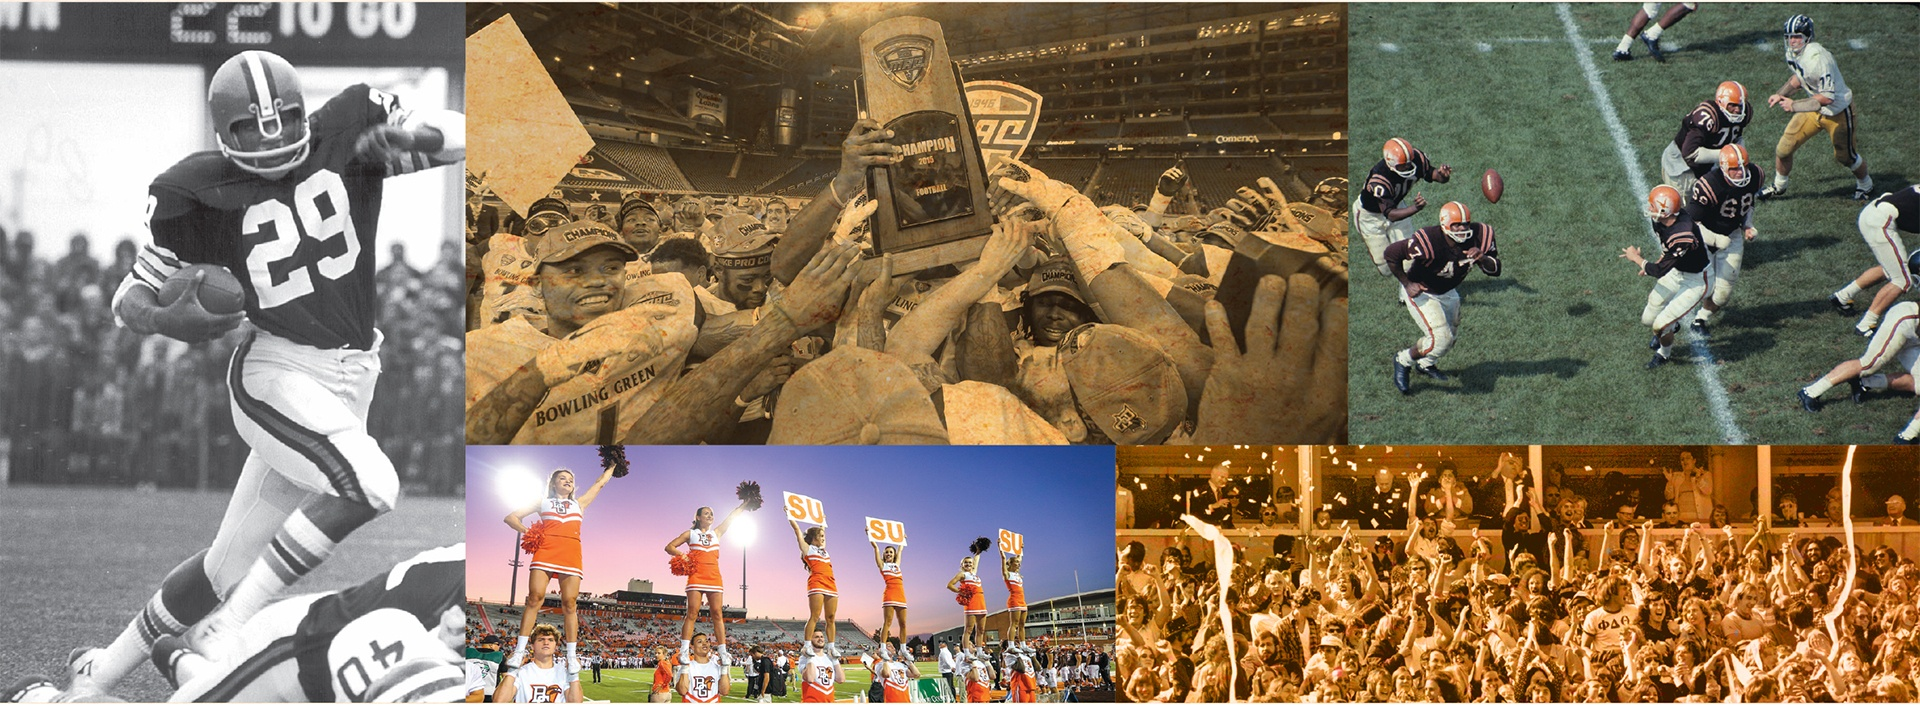 Collage of football photos including cheerleaders holding trophy and action photos